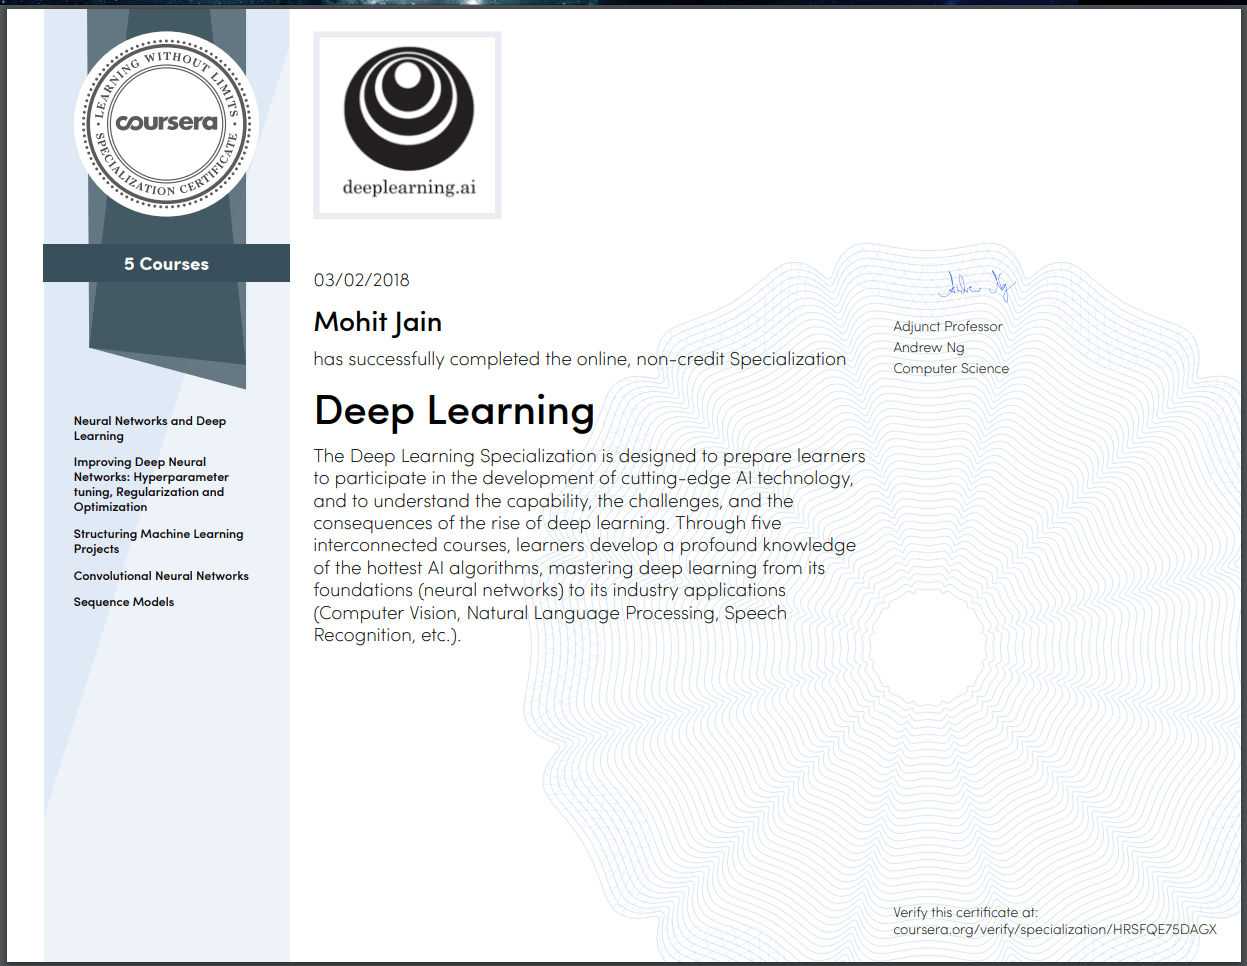 My thoughts on the Deep Learning Specialization on Coursera